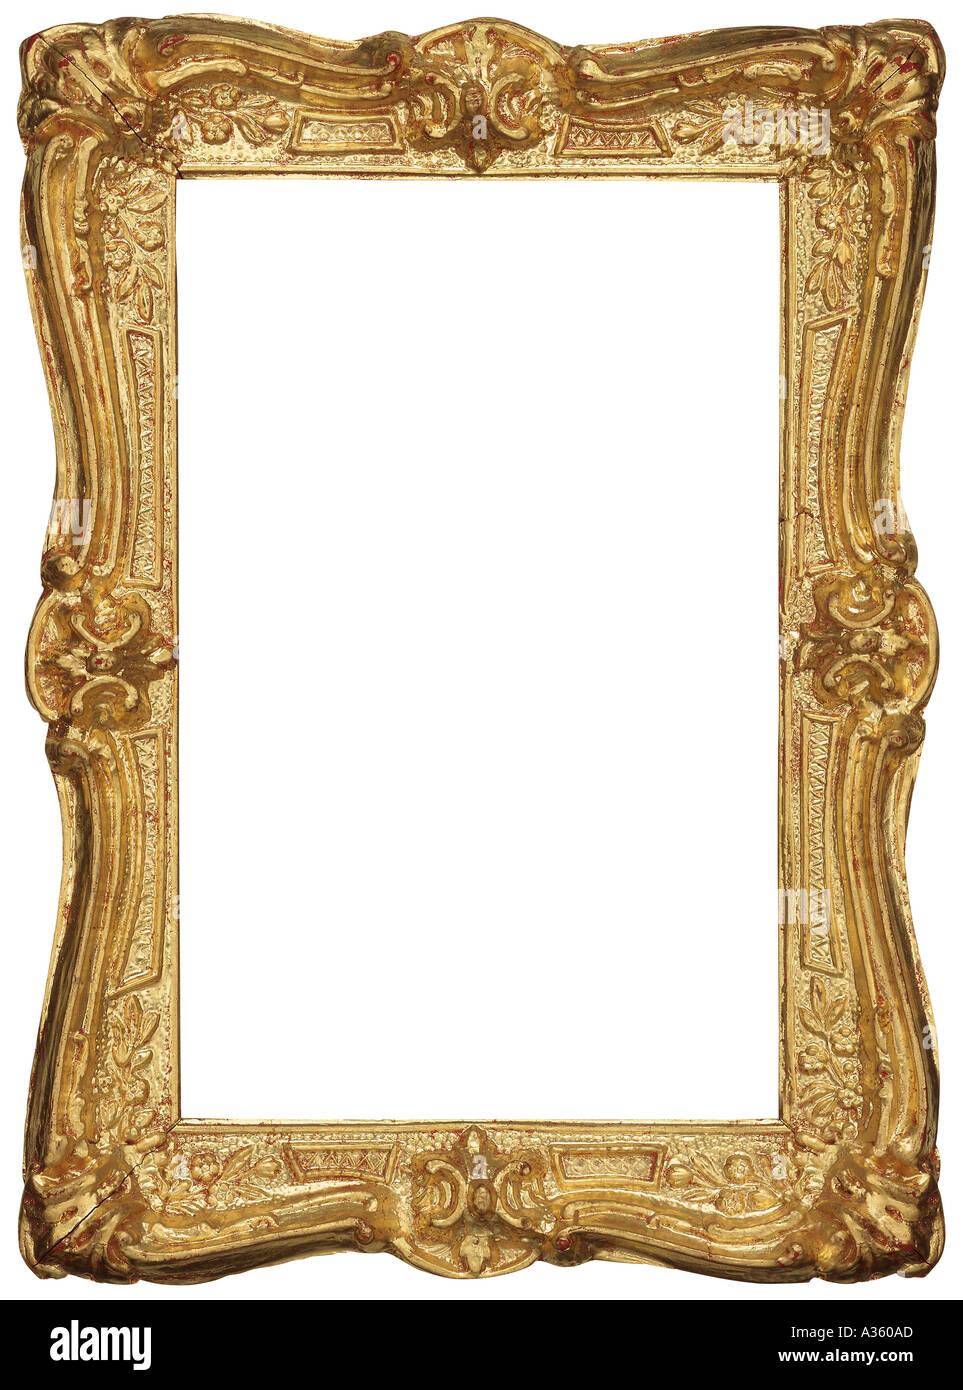 d127a864842 A vertical gold gilded rectangular decorative shiny ornate antique frame